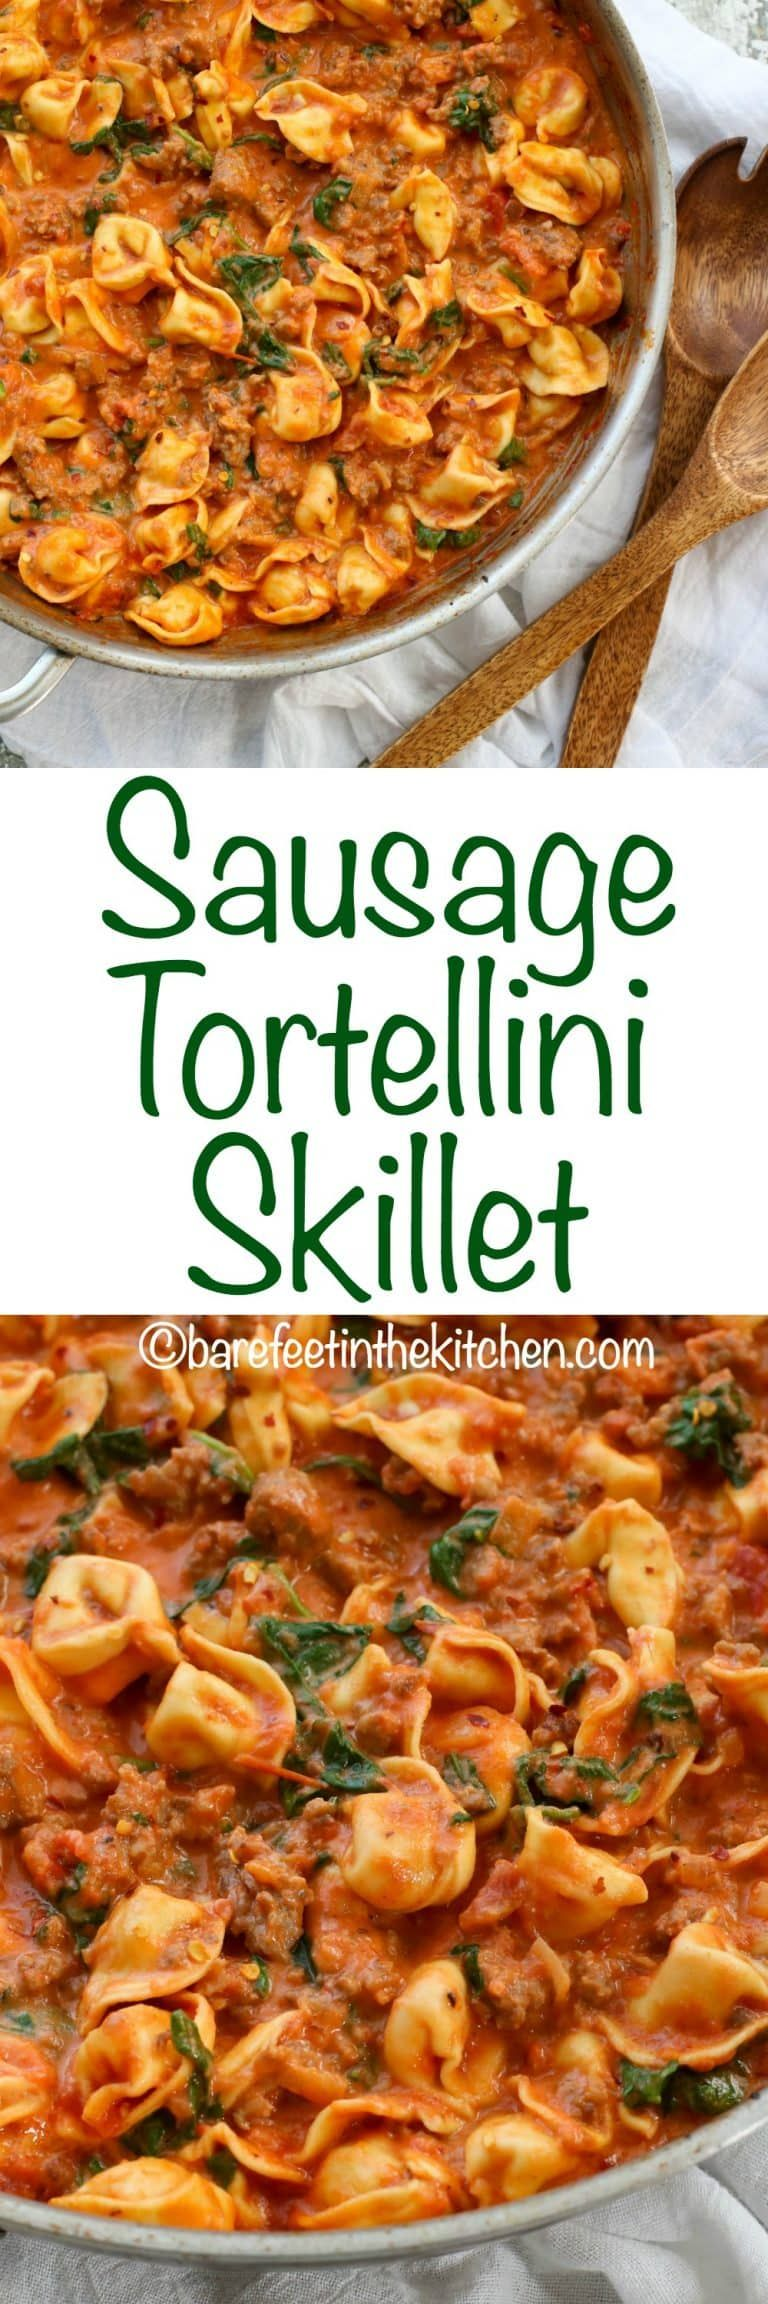 Sausage Tortellini And Spinach In A Creamy Tomato Sauce Is A Fantastic 20 Minute Dinner Plan Get The Rec Tortellini Recipes Sausage Tortellini Pasta Dinners